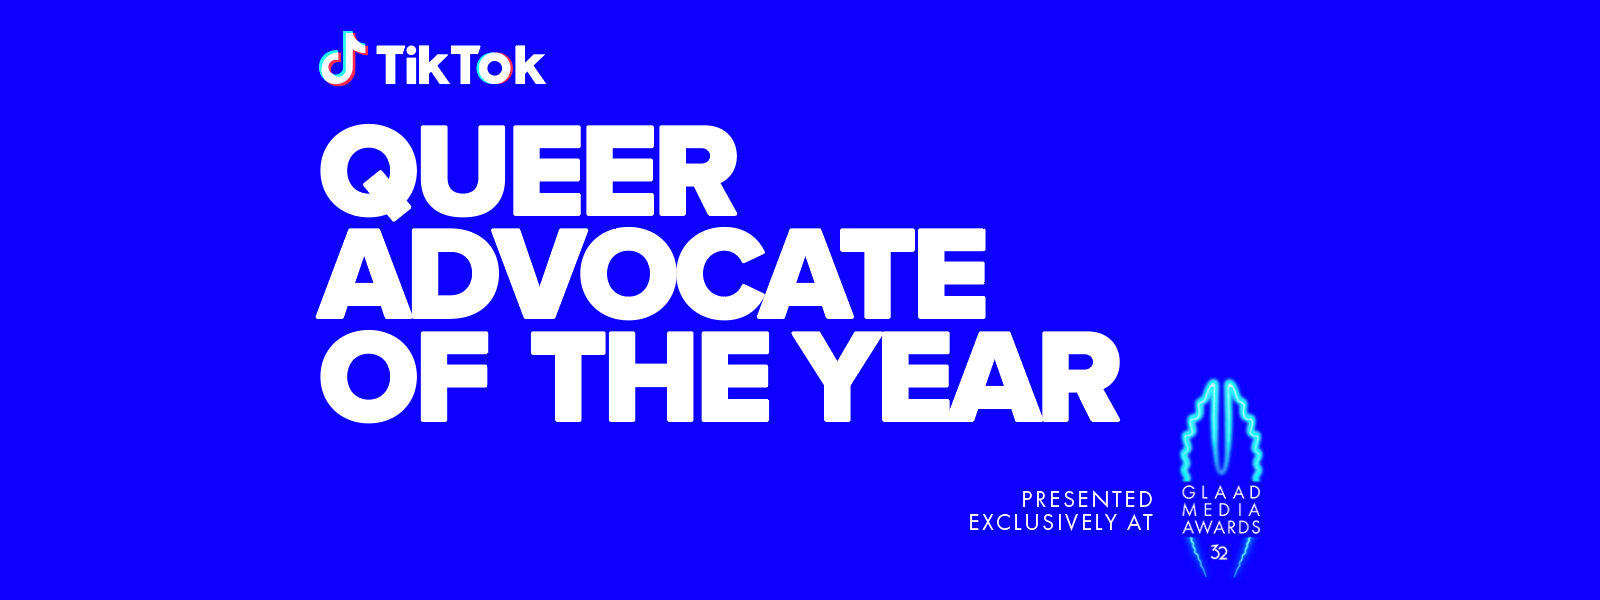 TikTok Queer Advocate of the Year